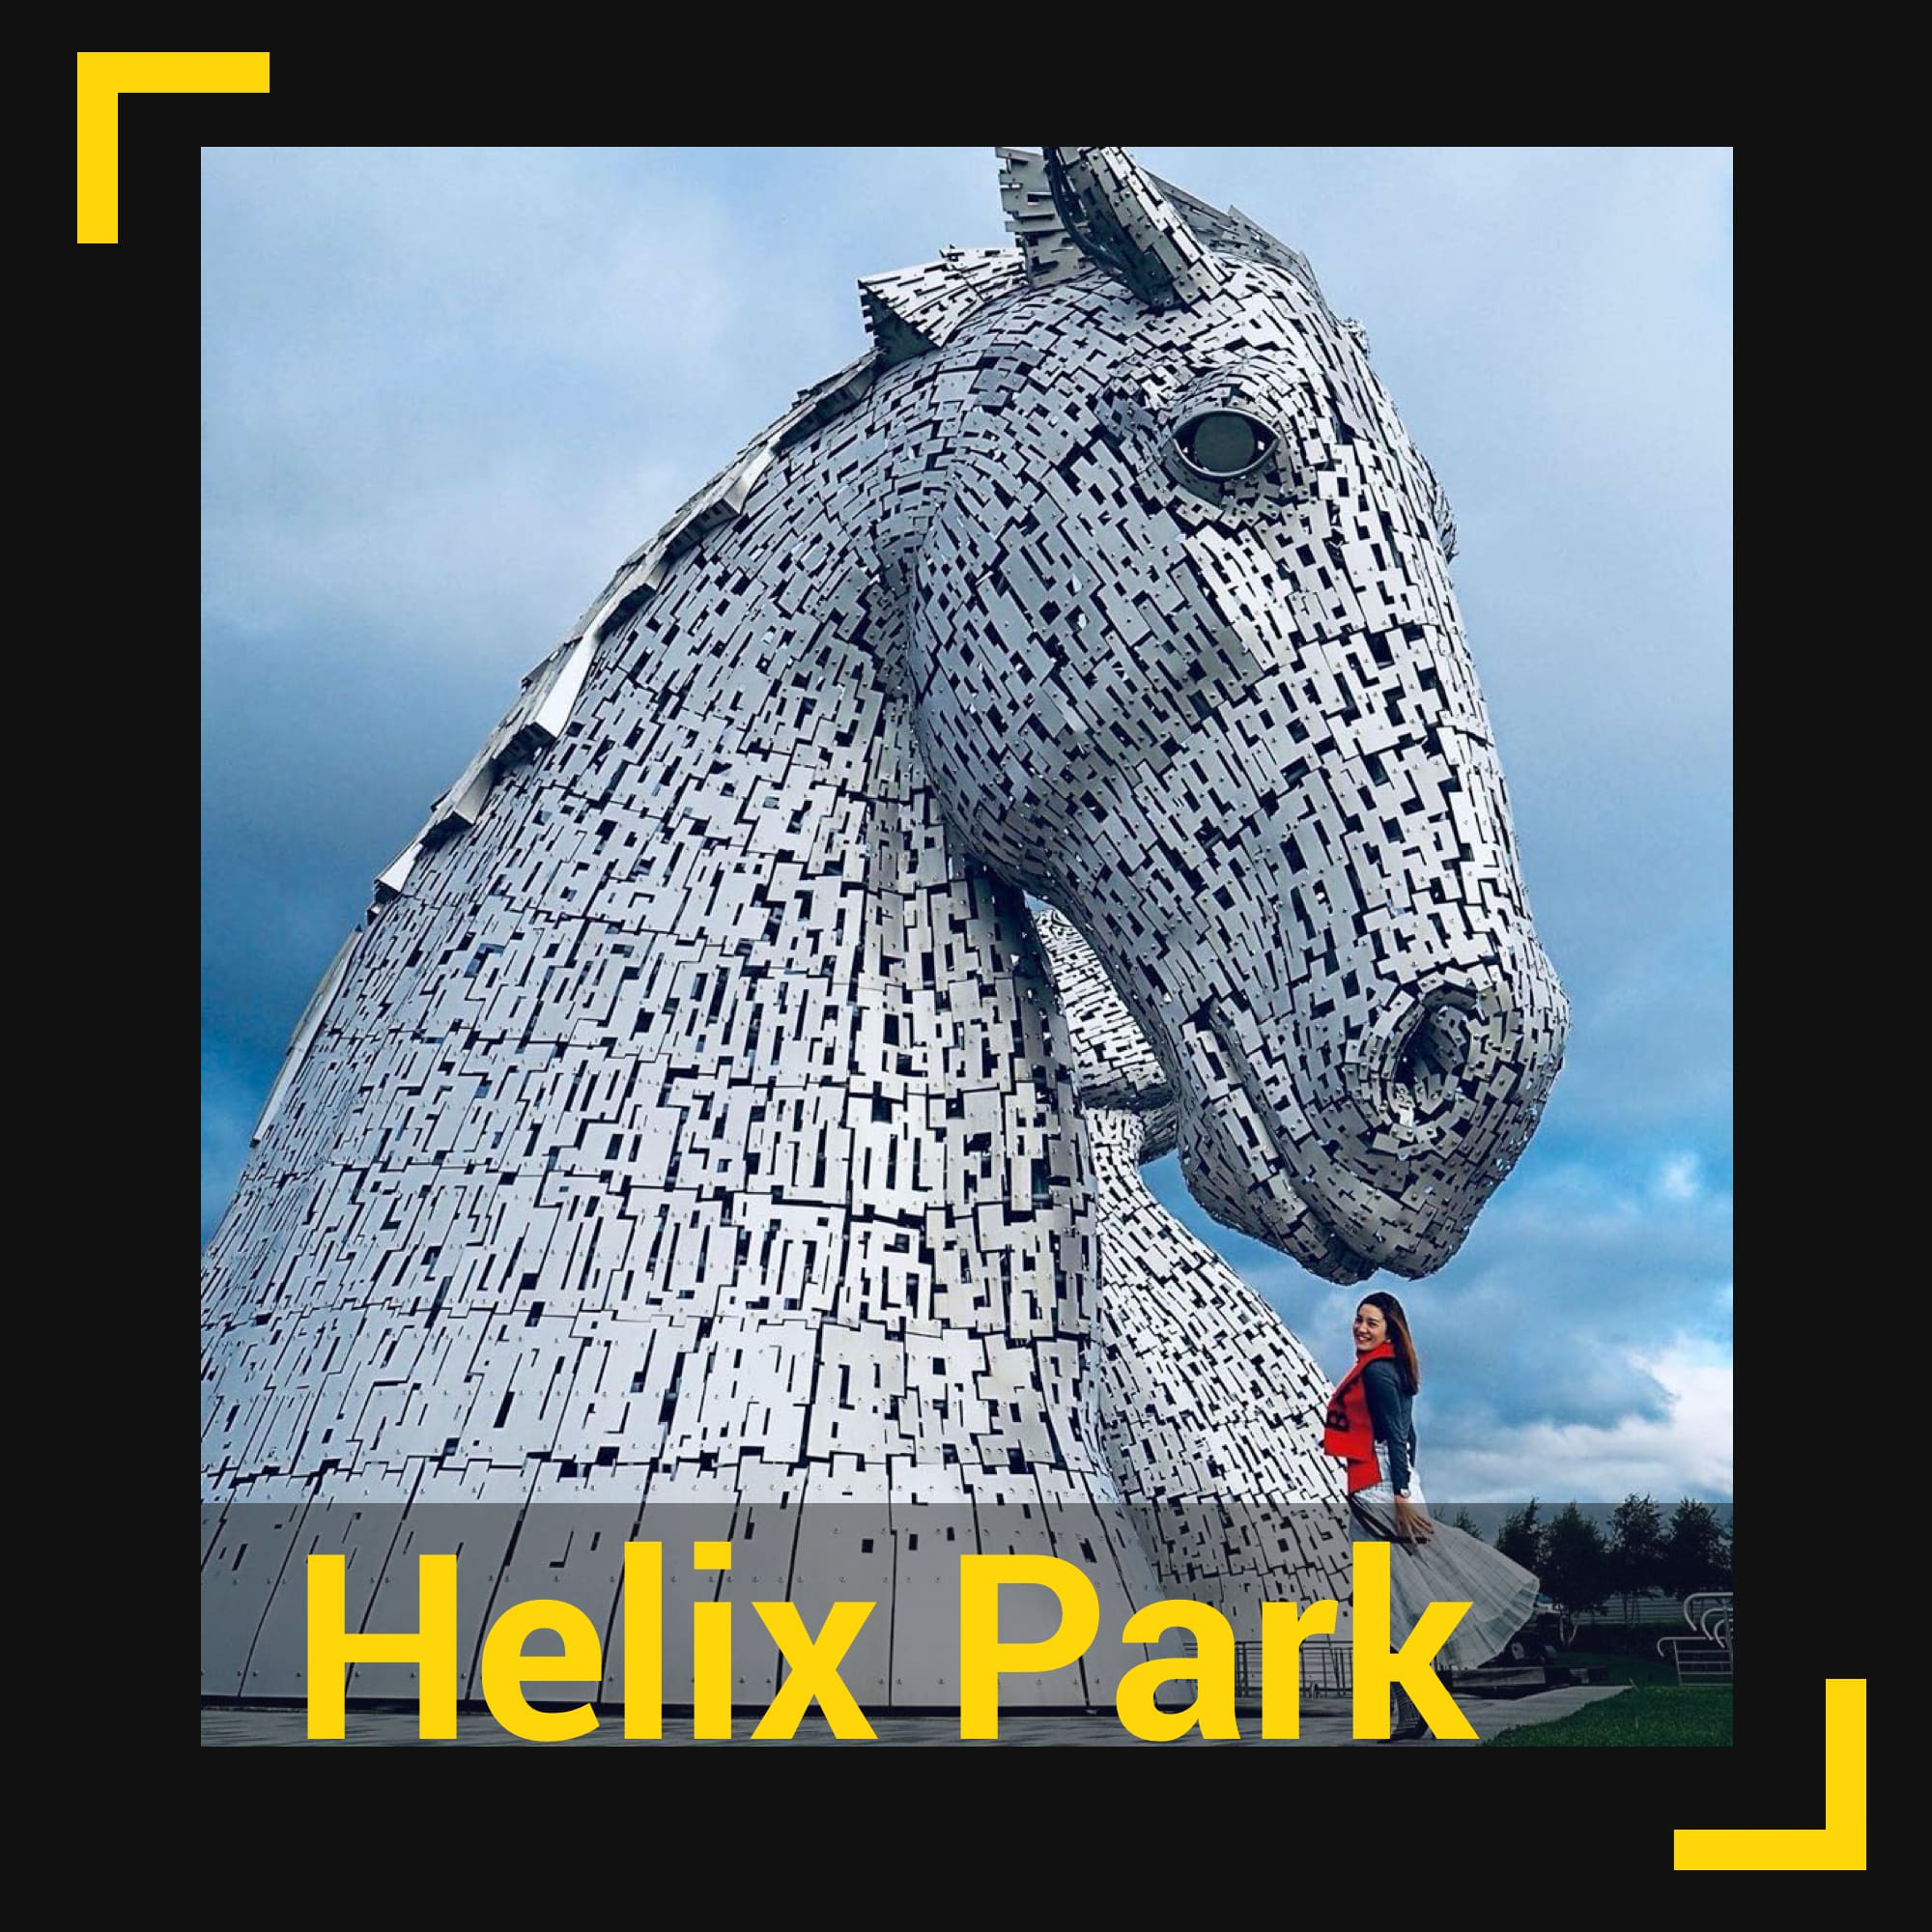 Helix Park in Glasgow